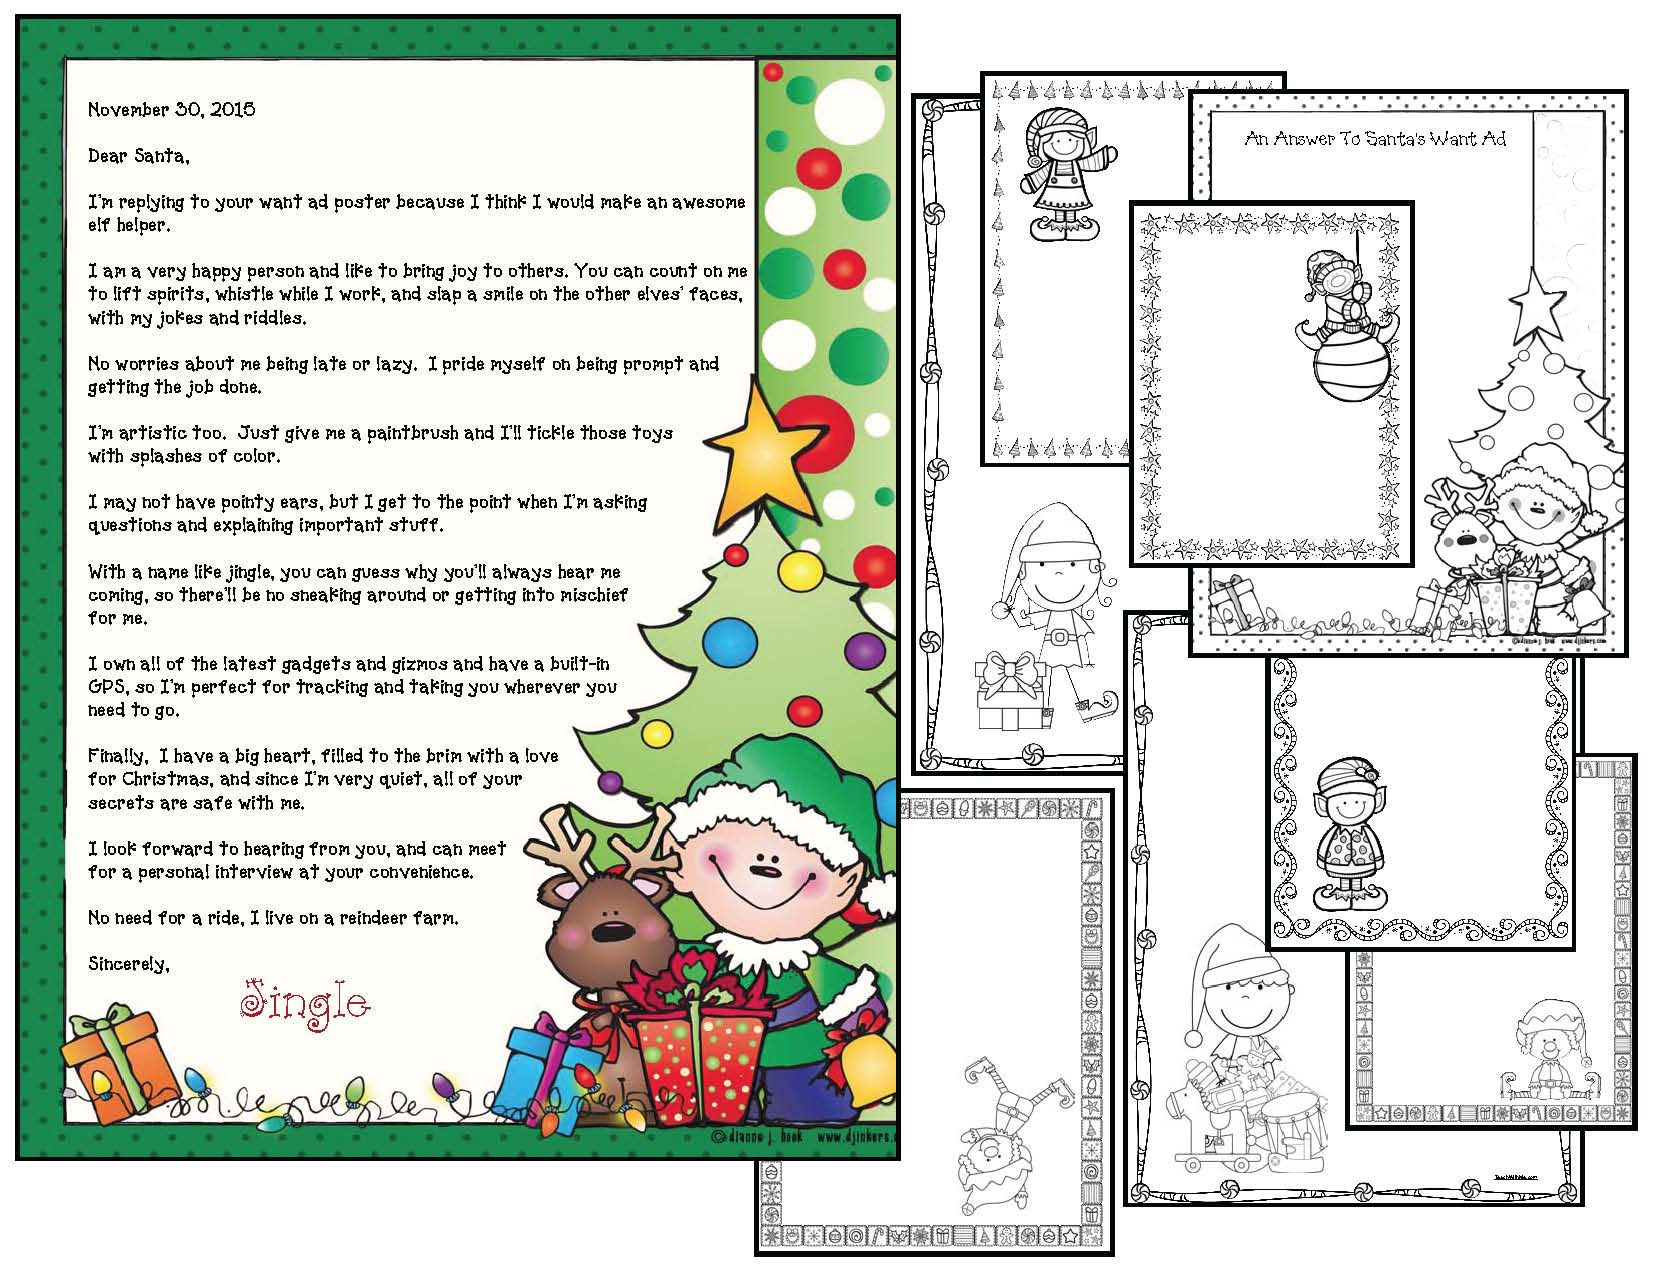 elf on a shelf activities, elf help, behavior modification activities, classroom management ideas, alphabet activities, elf-abet cards, elf on a shelf games, elf on a shelf crafts